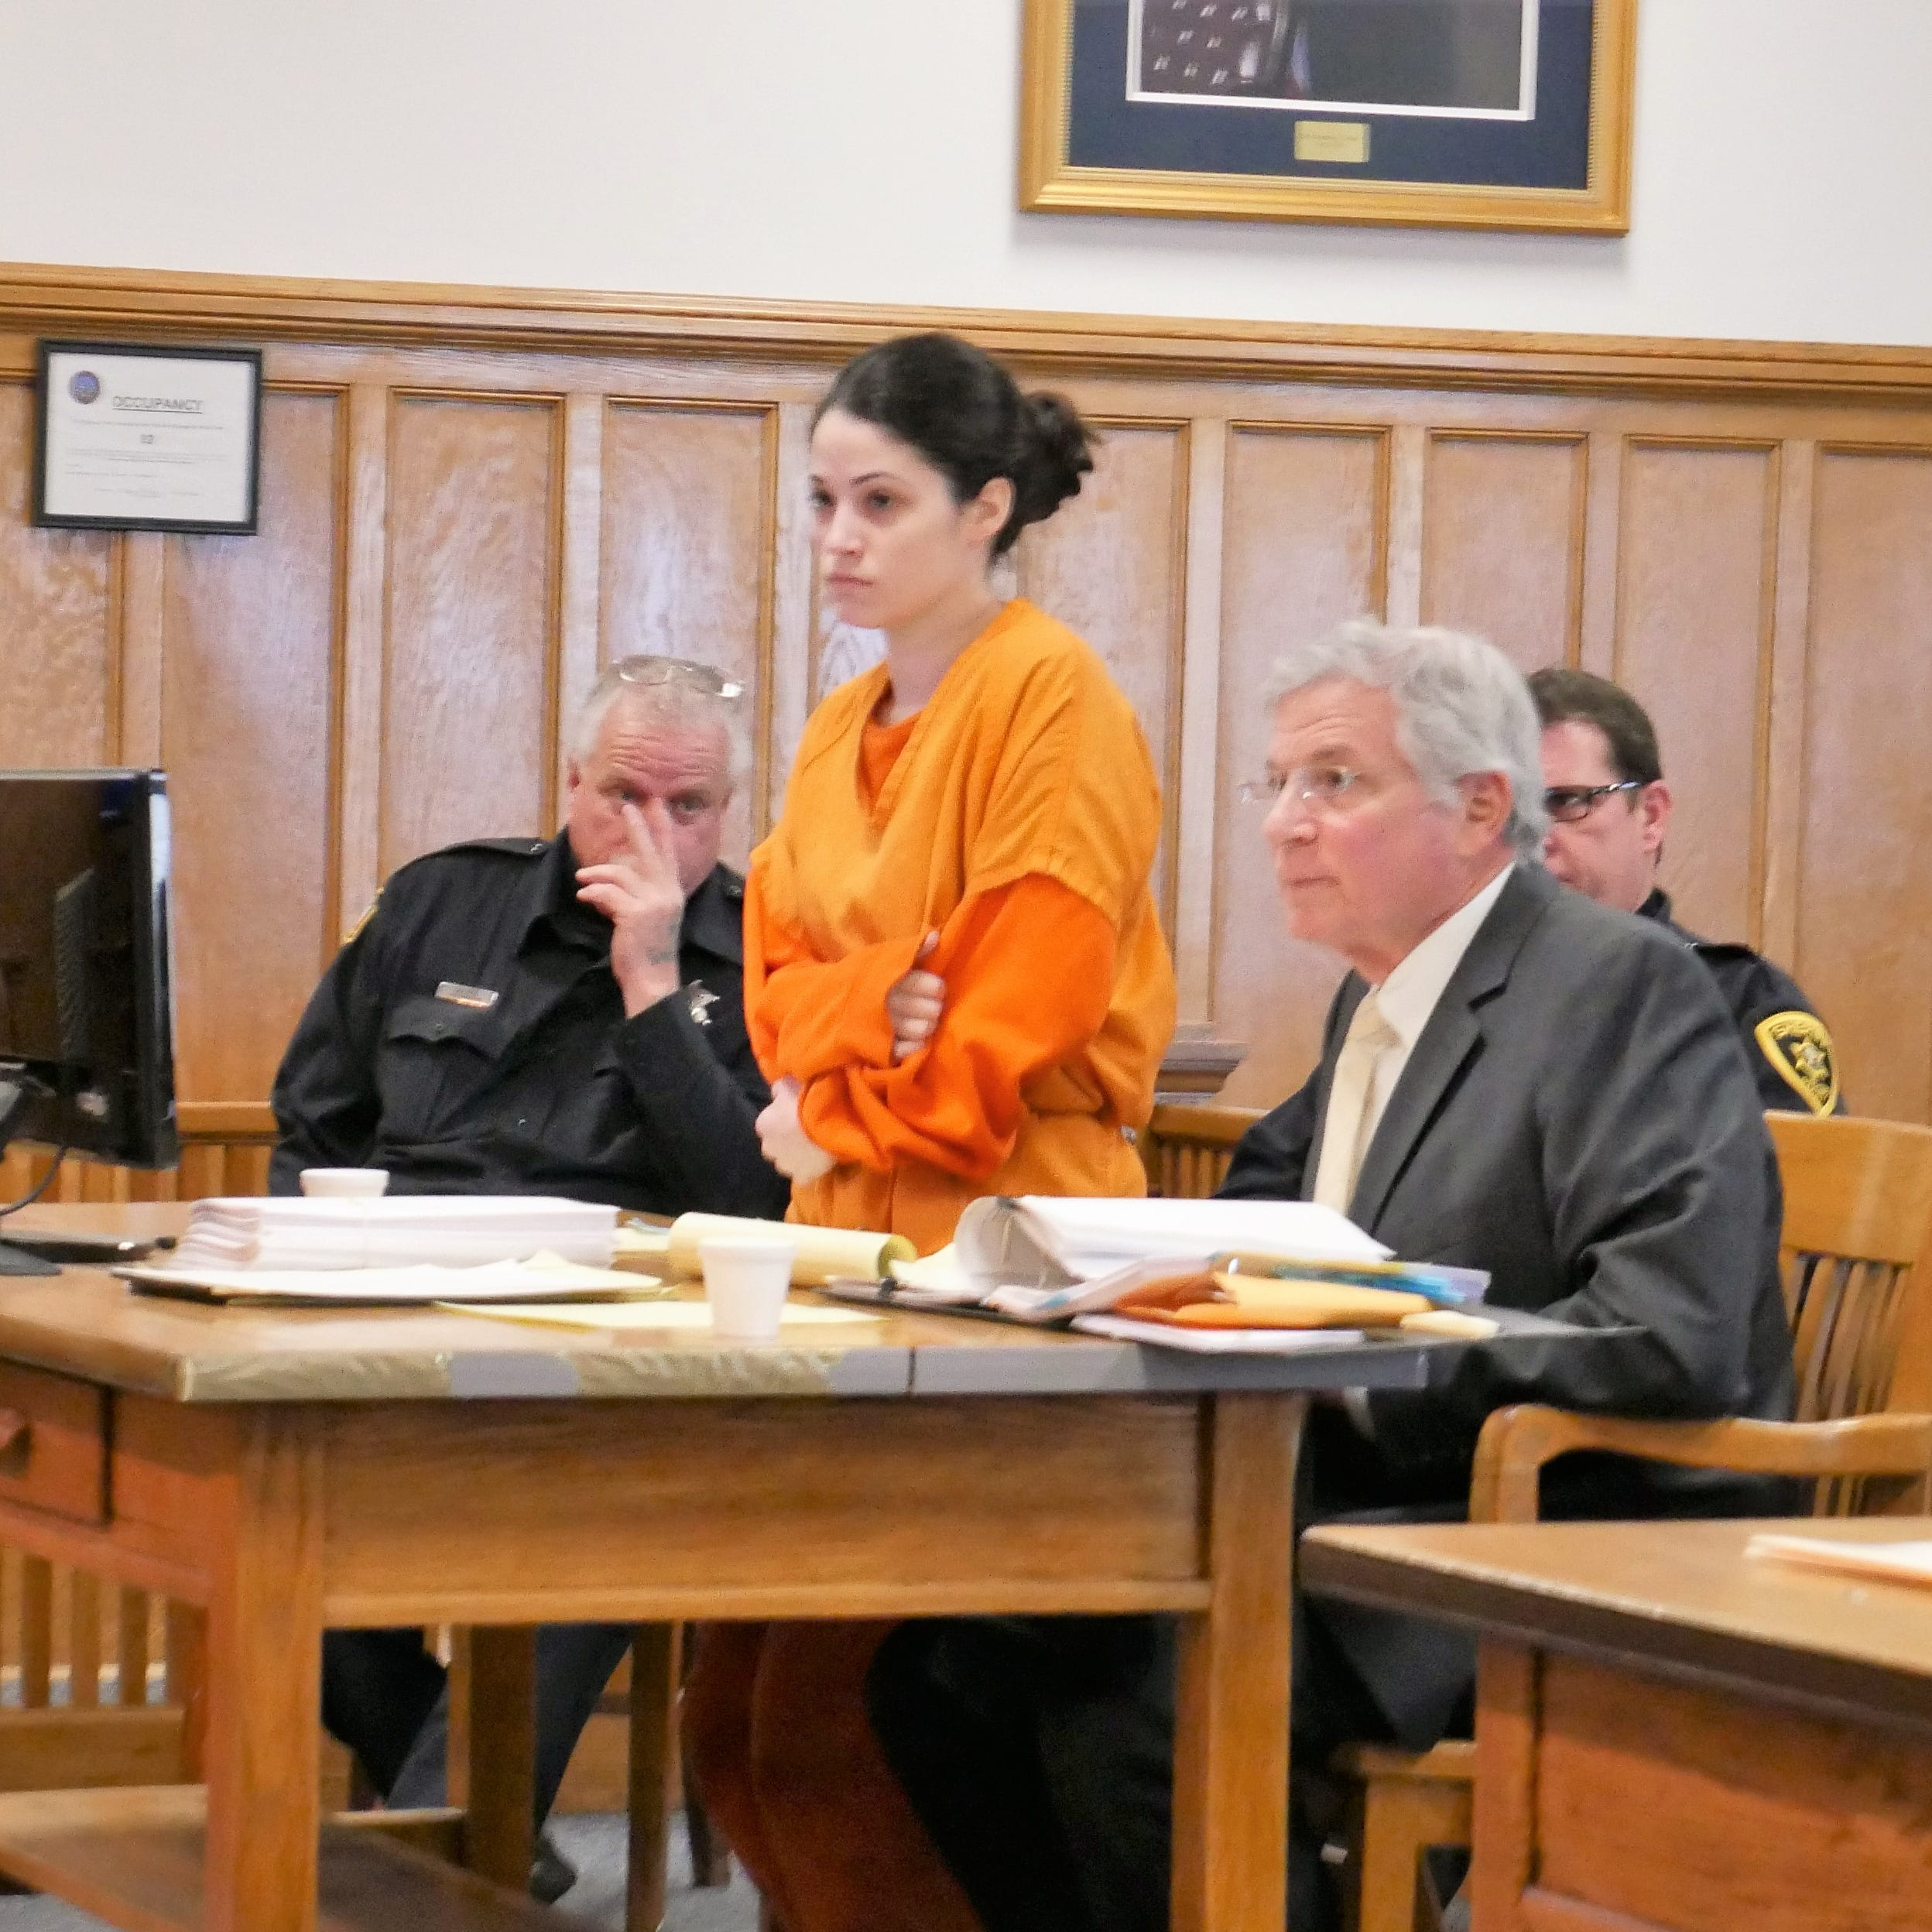 Nicole Addimando stands in Dutchess County Court during a pretrial hearing on Nov. 13, 2018.